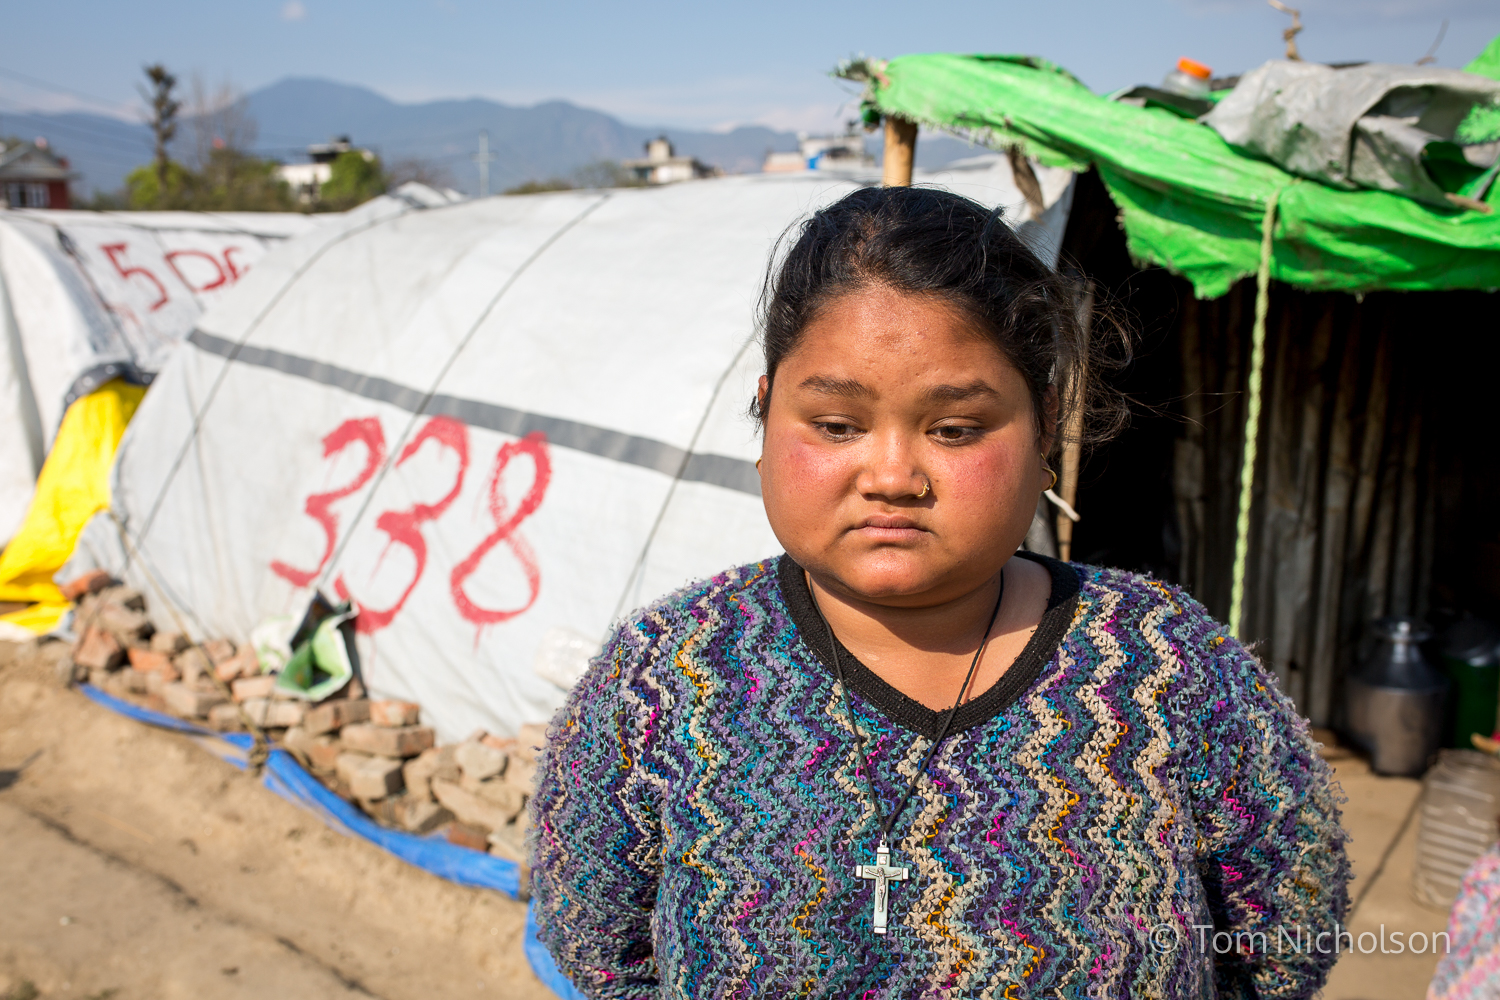 Susmita (15) in the Internally Displaced Person (IDP) camp in Chuchepati, Kathmandu City, Nepal on 16 March 2016. Susmita is blind due to meningitis, diagnosed in 2012, (when she was 11). She lives in the tent with her grandmother, mother, father, and five younger siblings. They moved to the camp on 12 May 2015 following the April 2015 earthquake.